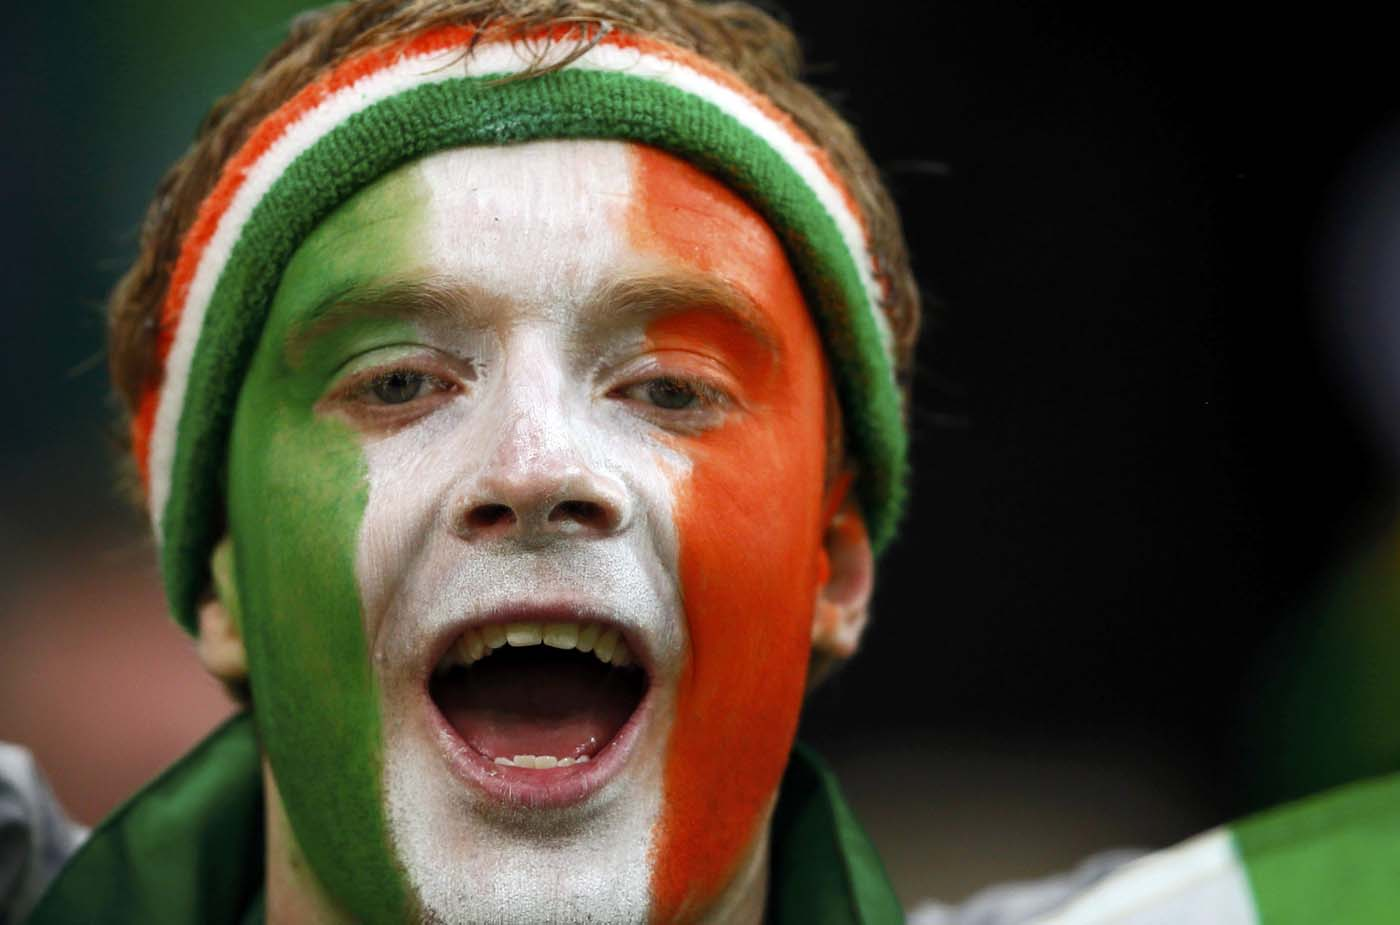 Irish soccer fan cheers before their Group C Euro 2012 soccer match against Spain at PGE Arena in Gdansk, June 14, 2012. (Kai Pfaffenbach/Reuters)